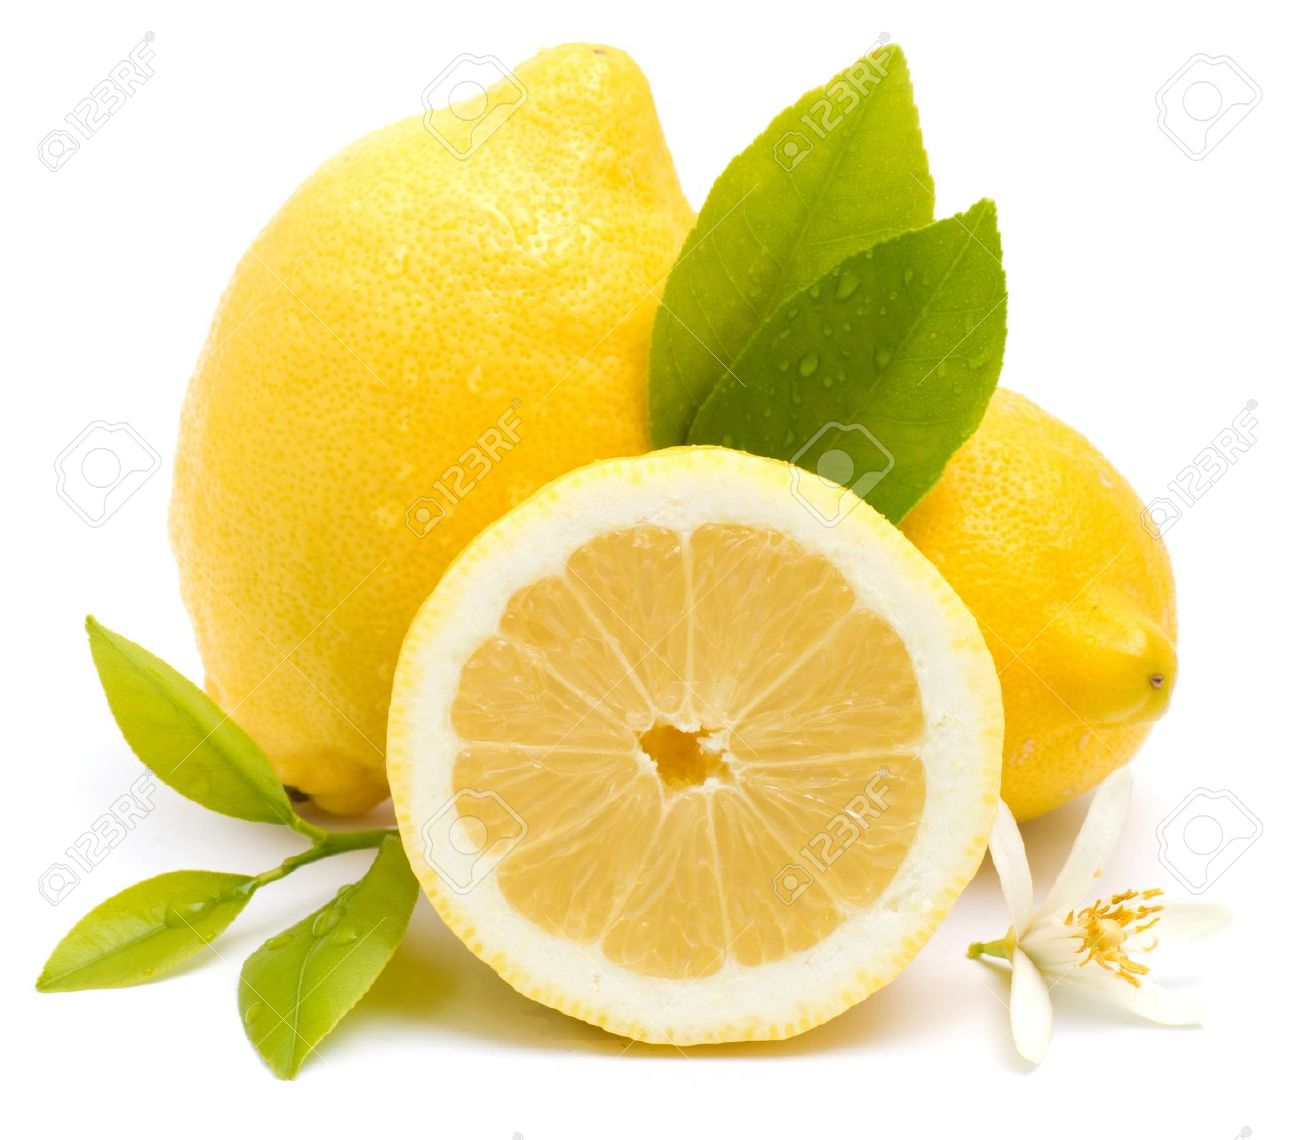 Australian lemon growers should export